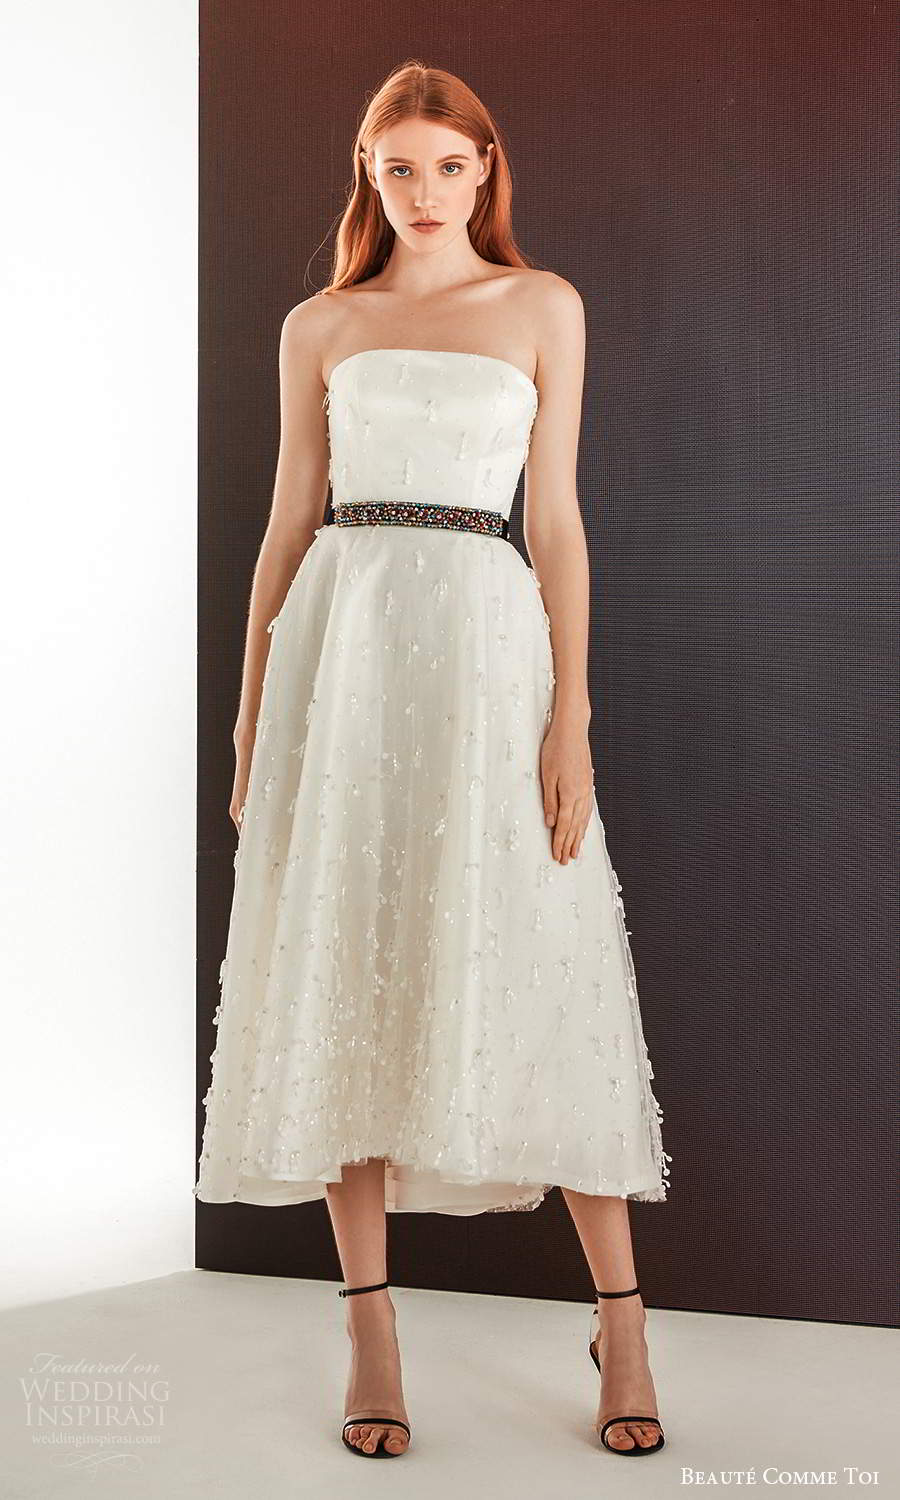 beaute comme toi fall 2021 bridal strapless straight across neckline embellished tea length a line wedding dress (8) mv